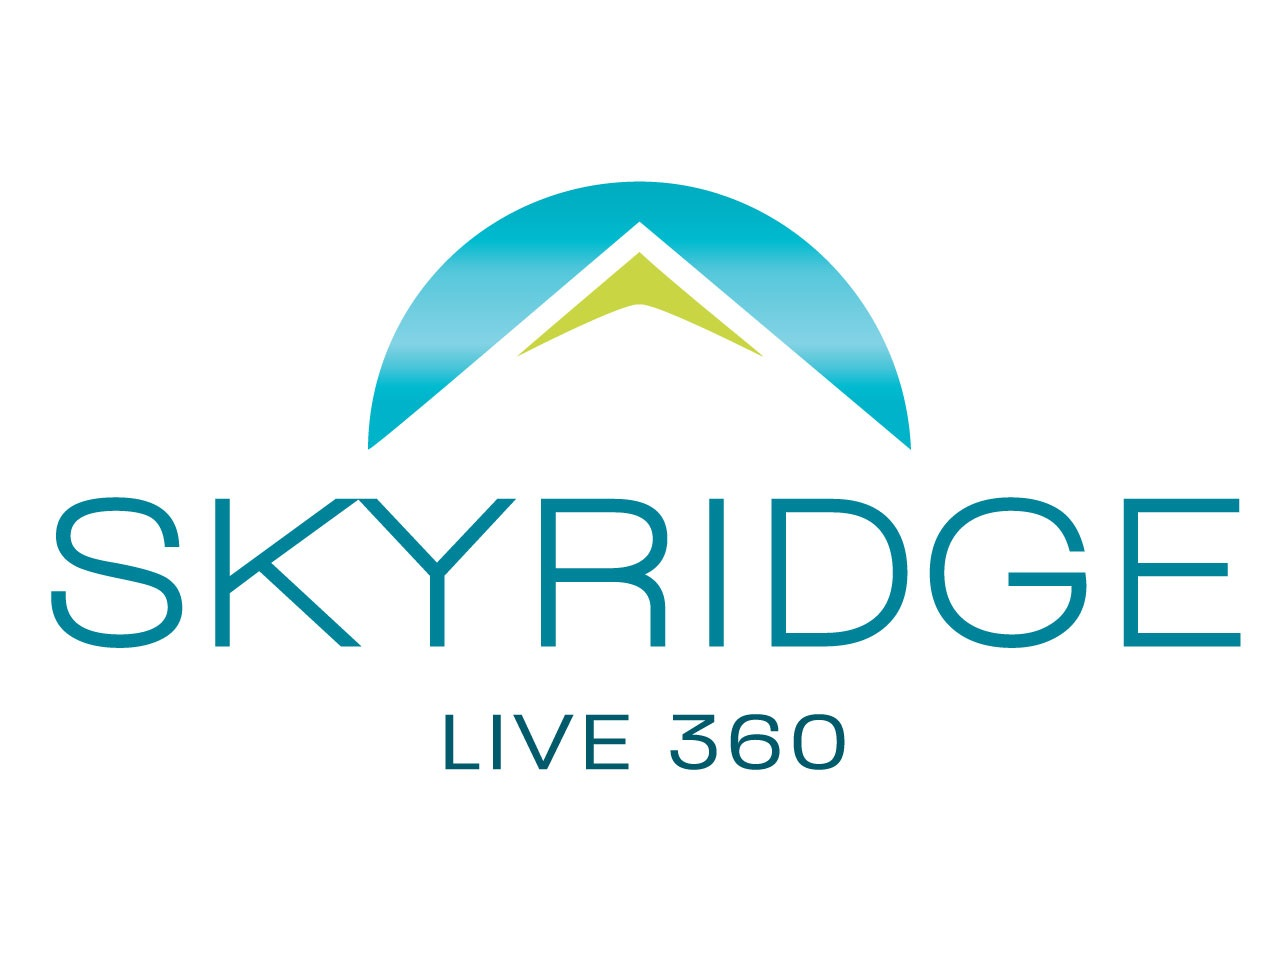 The Skysuites are an exceptional collection of 44 modern, 1,2 and 3 bedroom condominiums in a master planned community. Skyridge is Squamish's largest Built Green certified project in a rare elevated location next to forest trails + featuring mountain views! West Coast inspired, 3-story building with one level floor plan ranging from 788 SF one bedroom to 1587 SF three bedroom suites. This 2 bedroom, 2 bath CORNER suite features a private forest outlook,  overheight ceilings, wide plank, brushed oak H/W floors + wool carpets in bedrooms. Common roof top deck, one parking, locker + private bike storage. Call listing agent for private viewing of the Show Home + experience the Next Level of Living at The Skysuites!